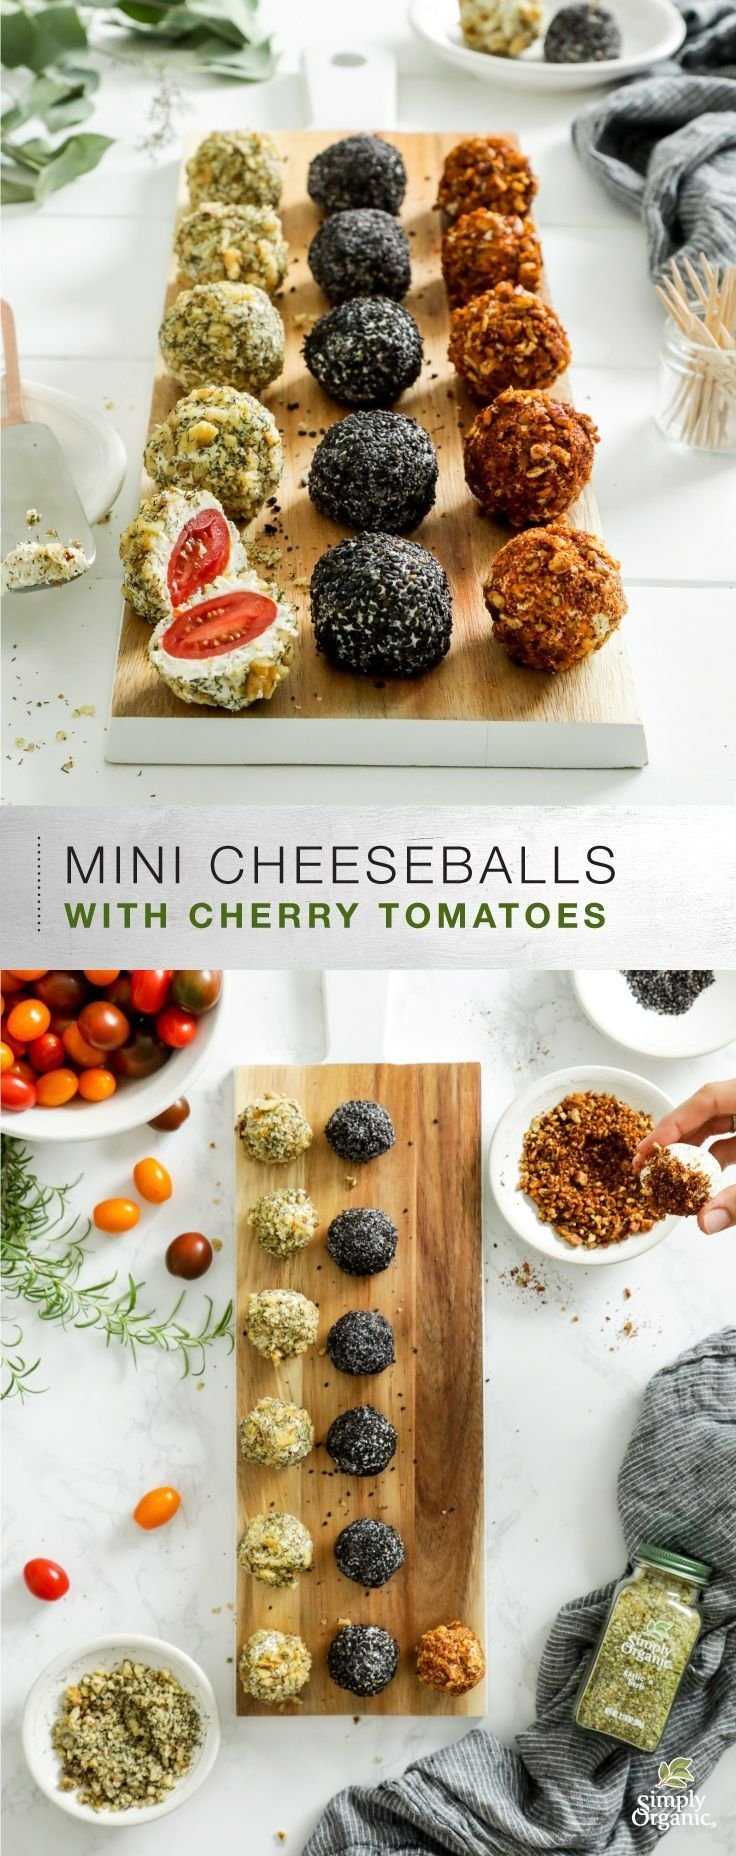 Set the table for joy this season with this spiced right Organic Mini Cheese Balls with Cherry Tomatoes from Simply Organic. #OrganicMoments